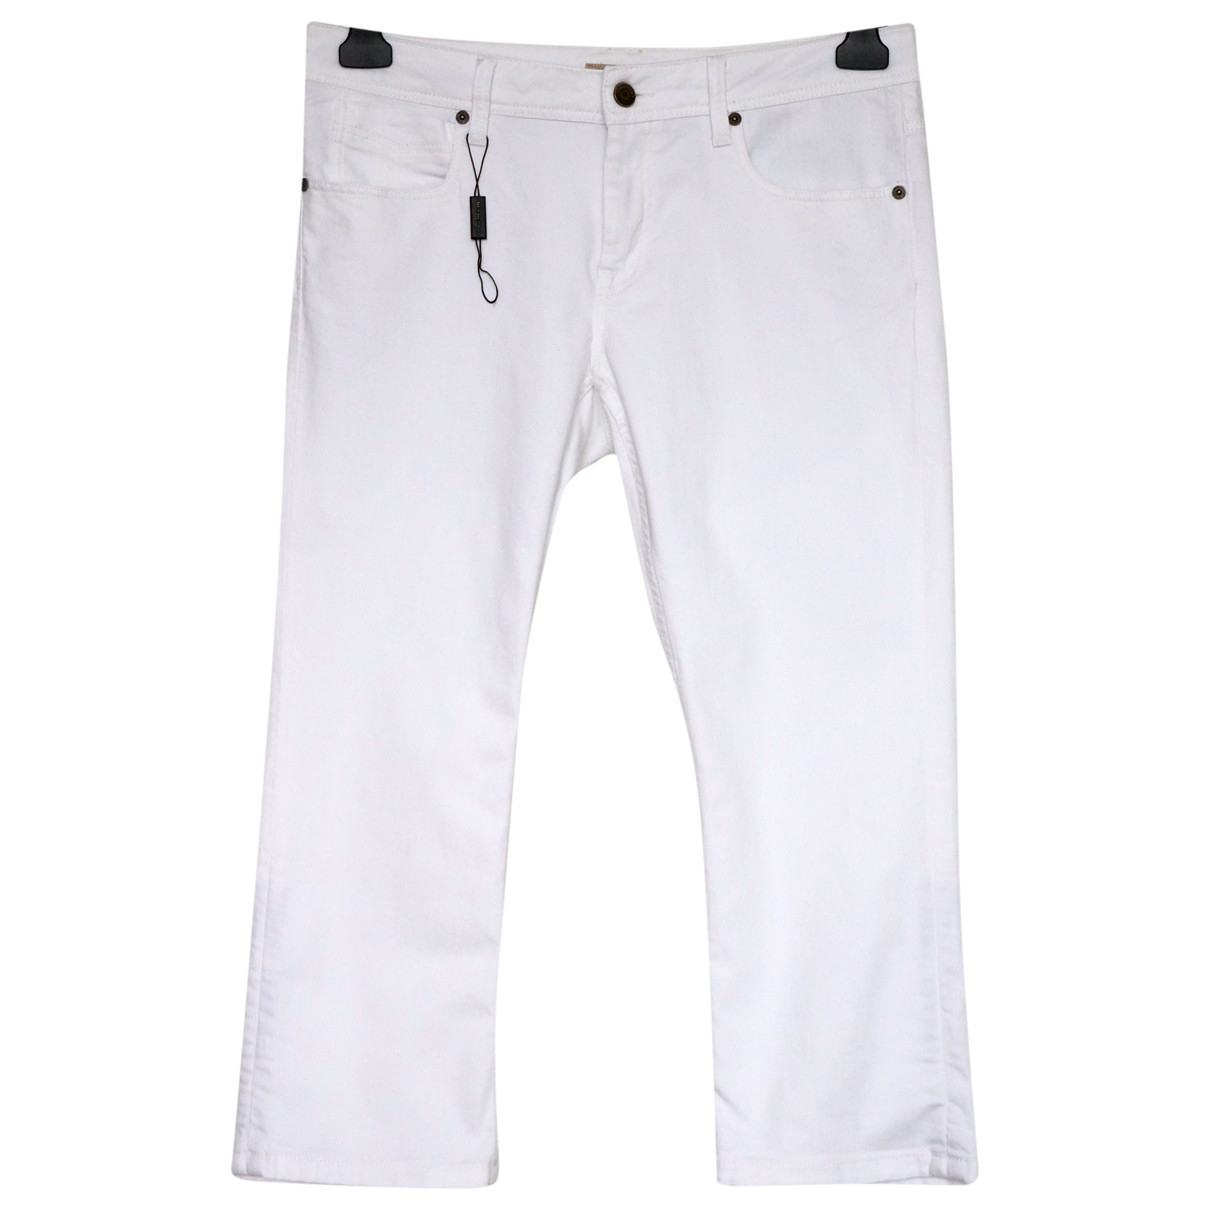 Burberry \N White Cotton Trousers for Women L International